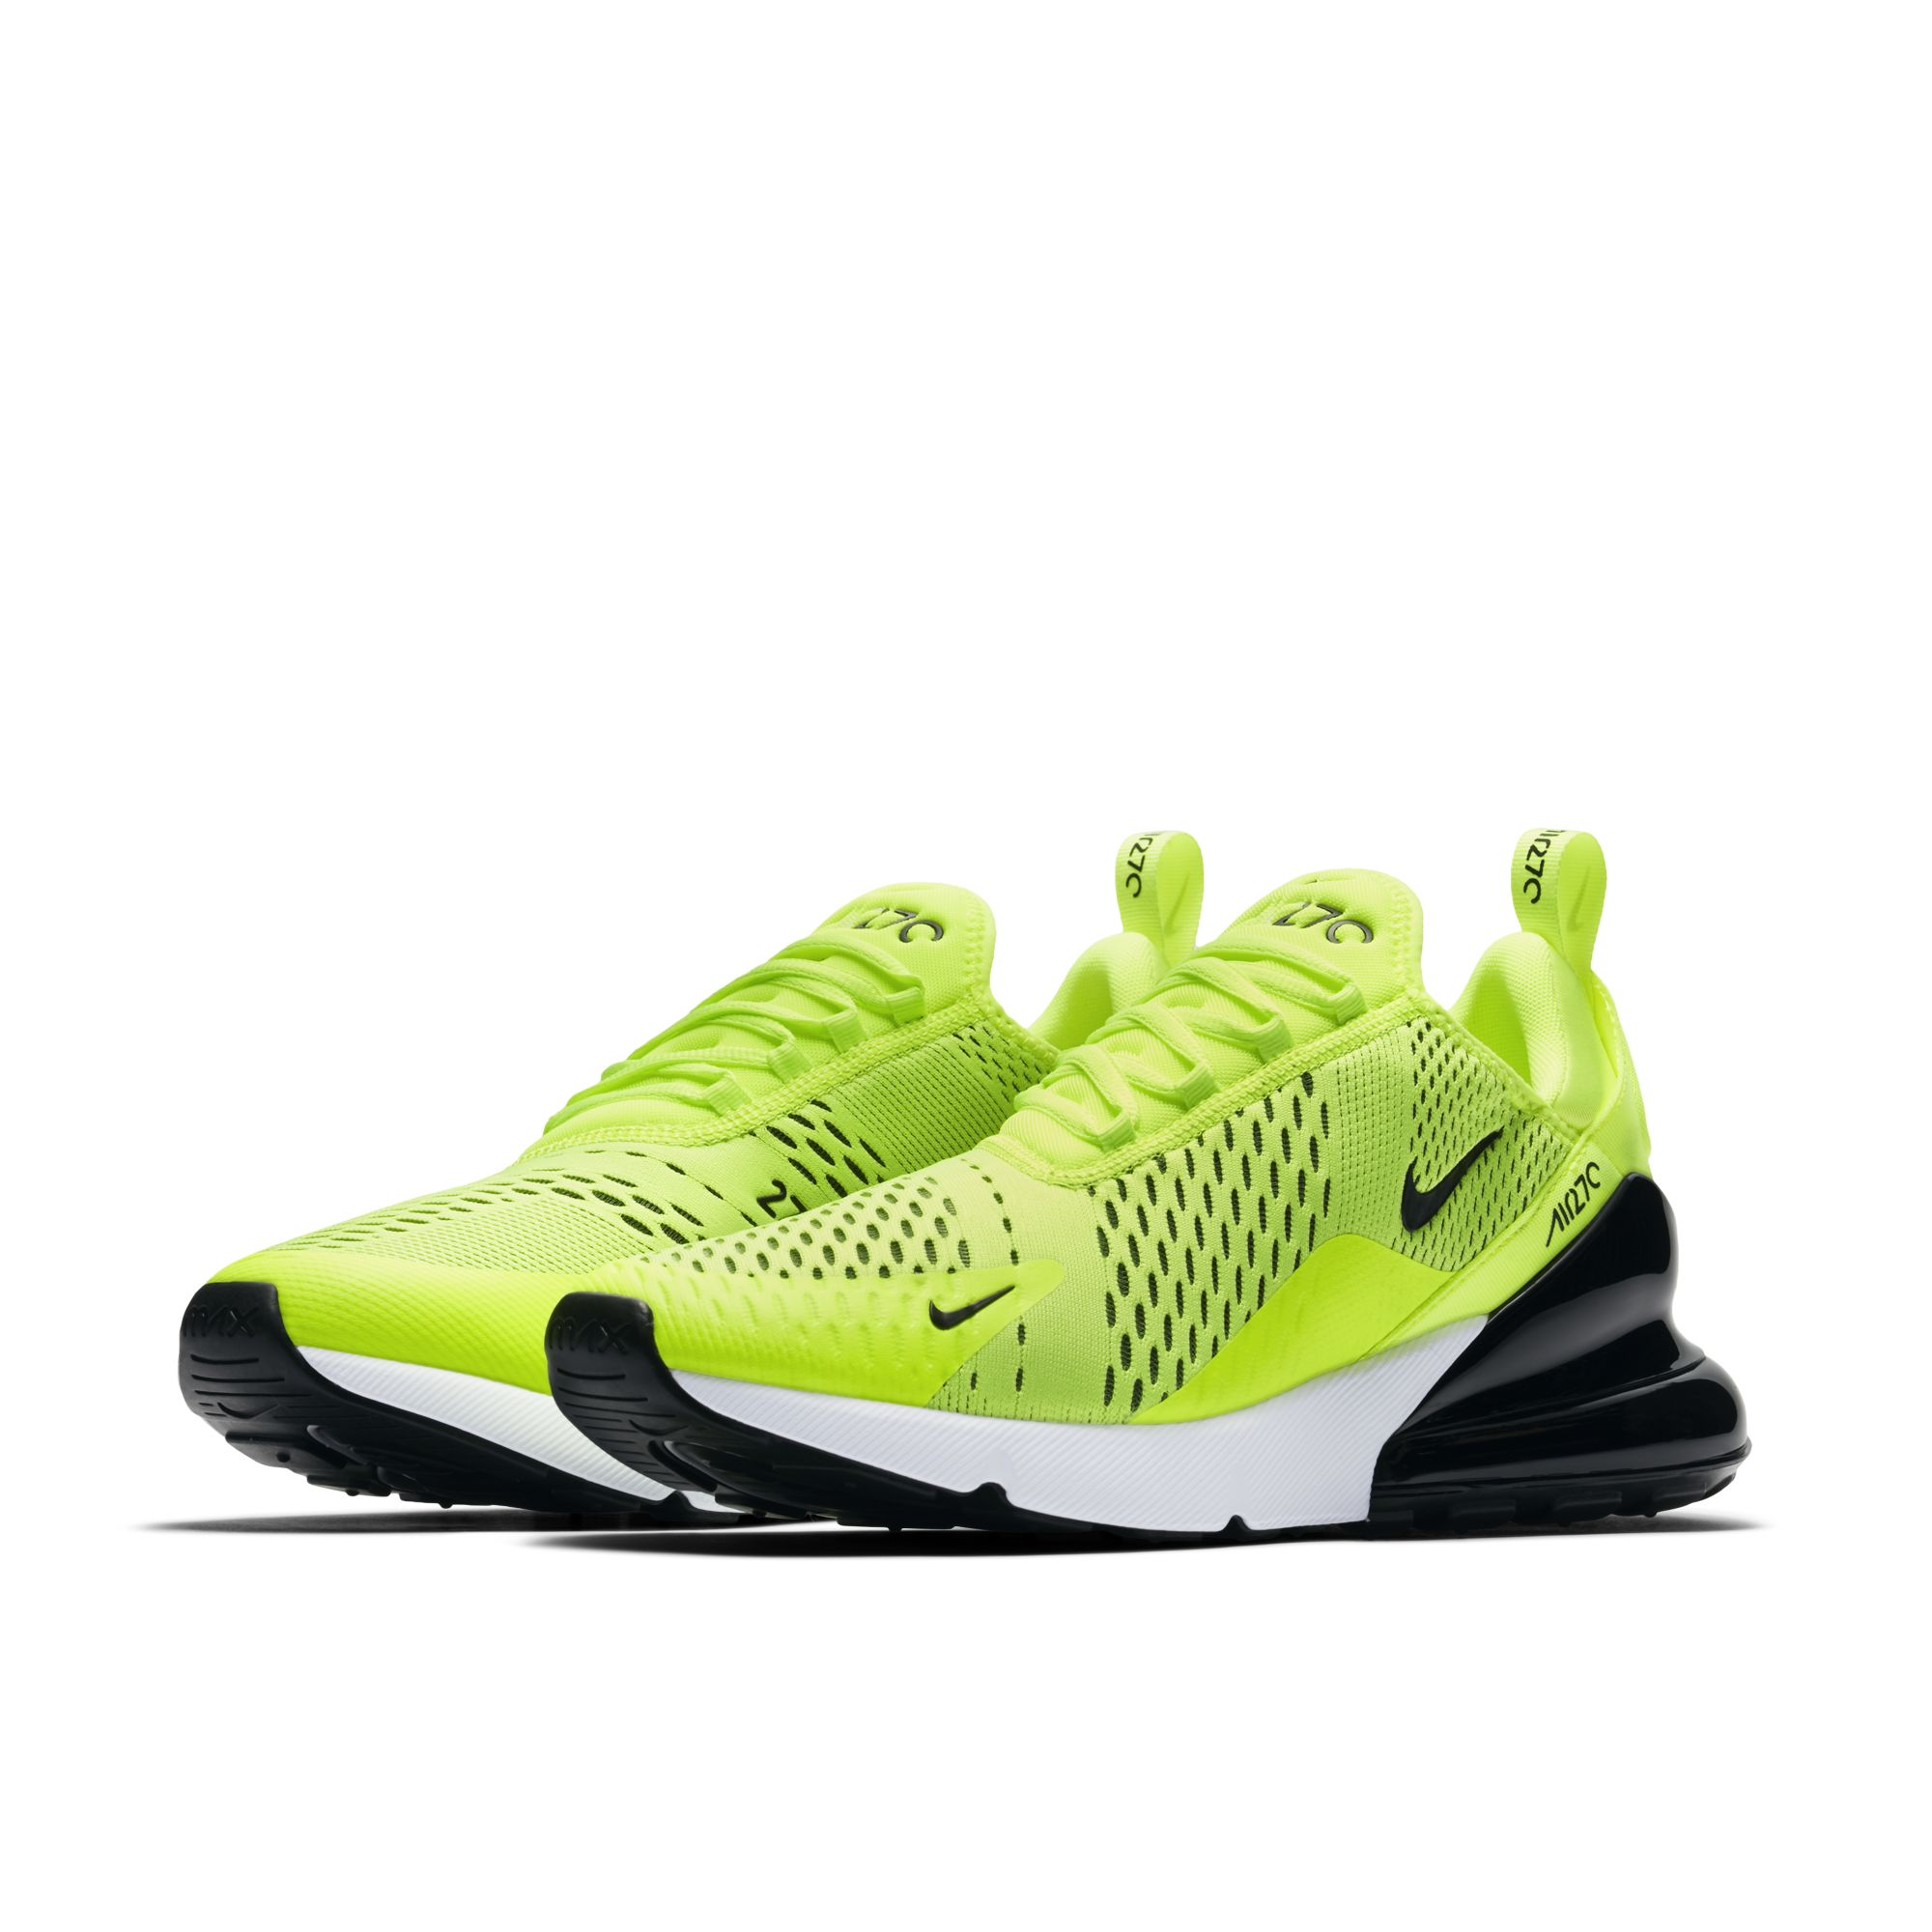 air Max 270 volt Archives WearTesters